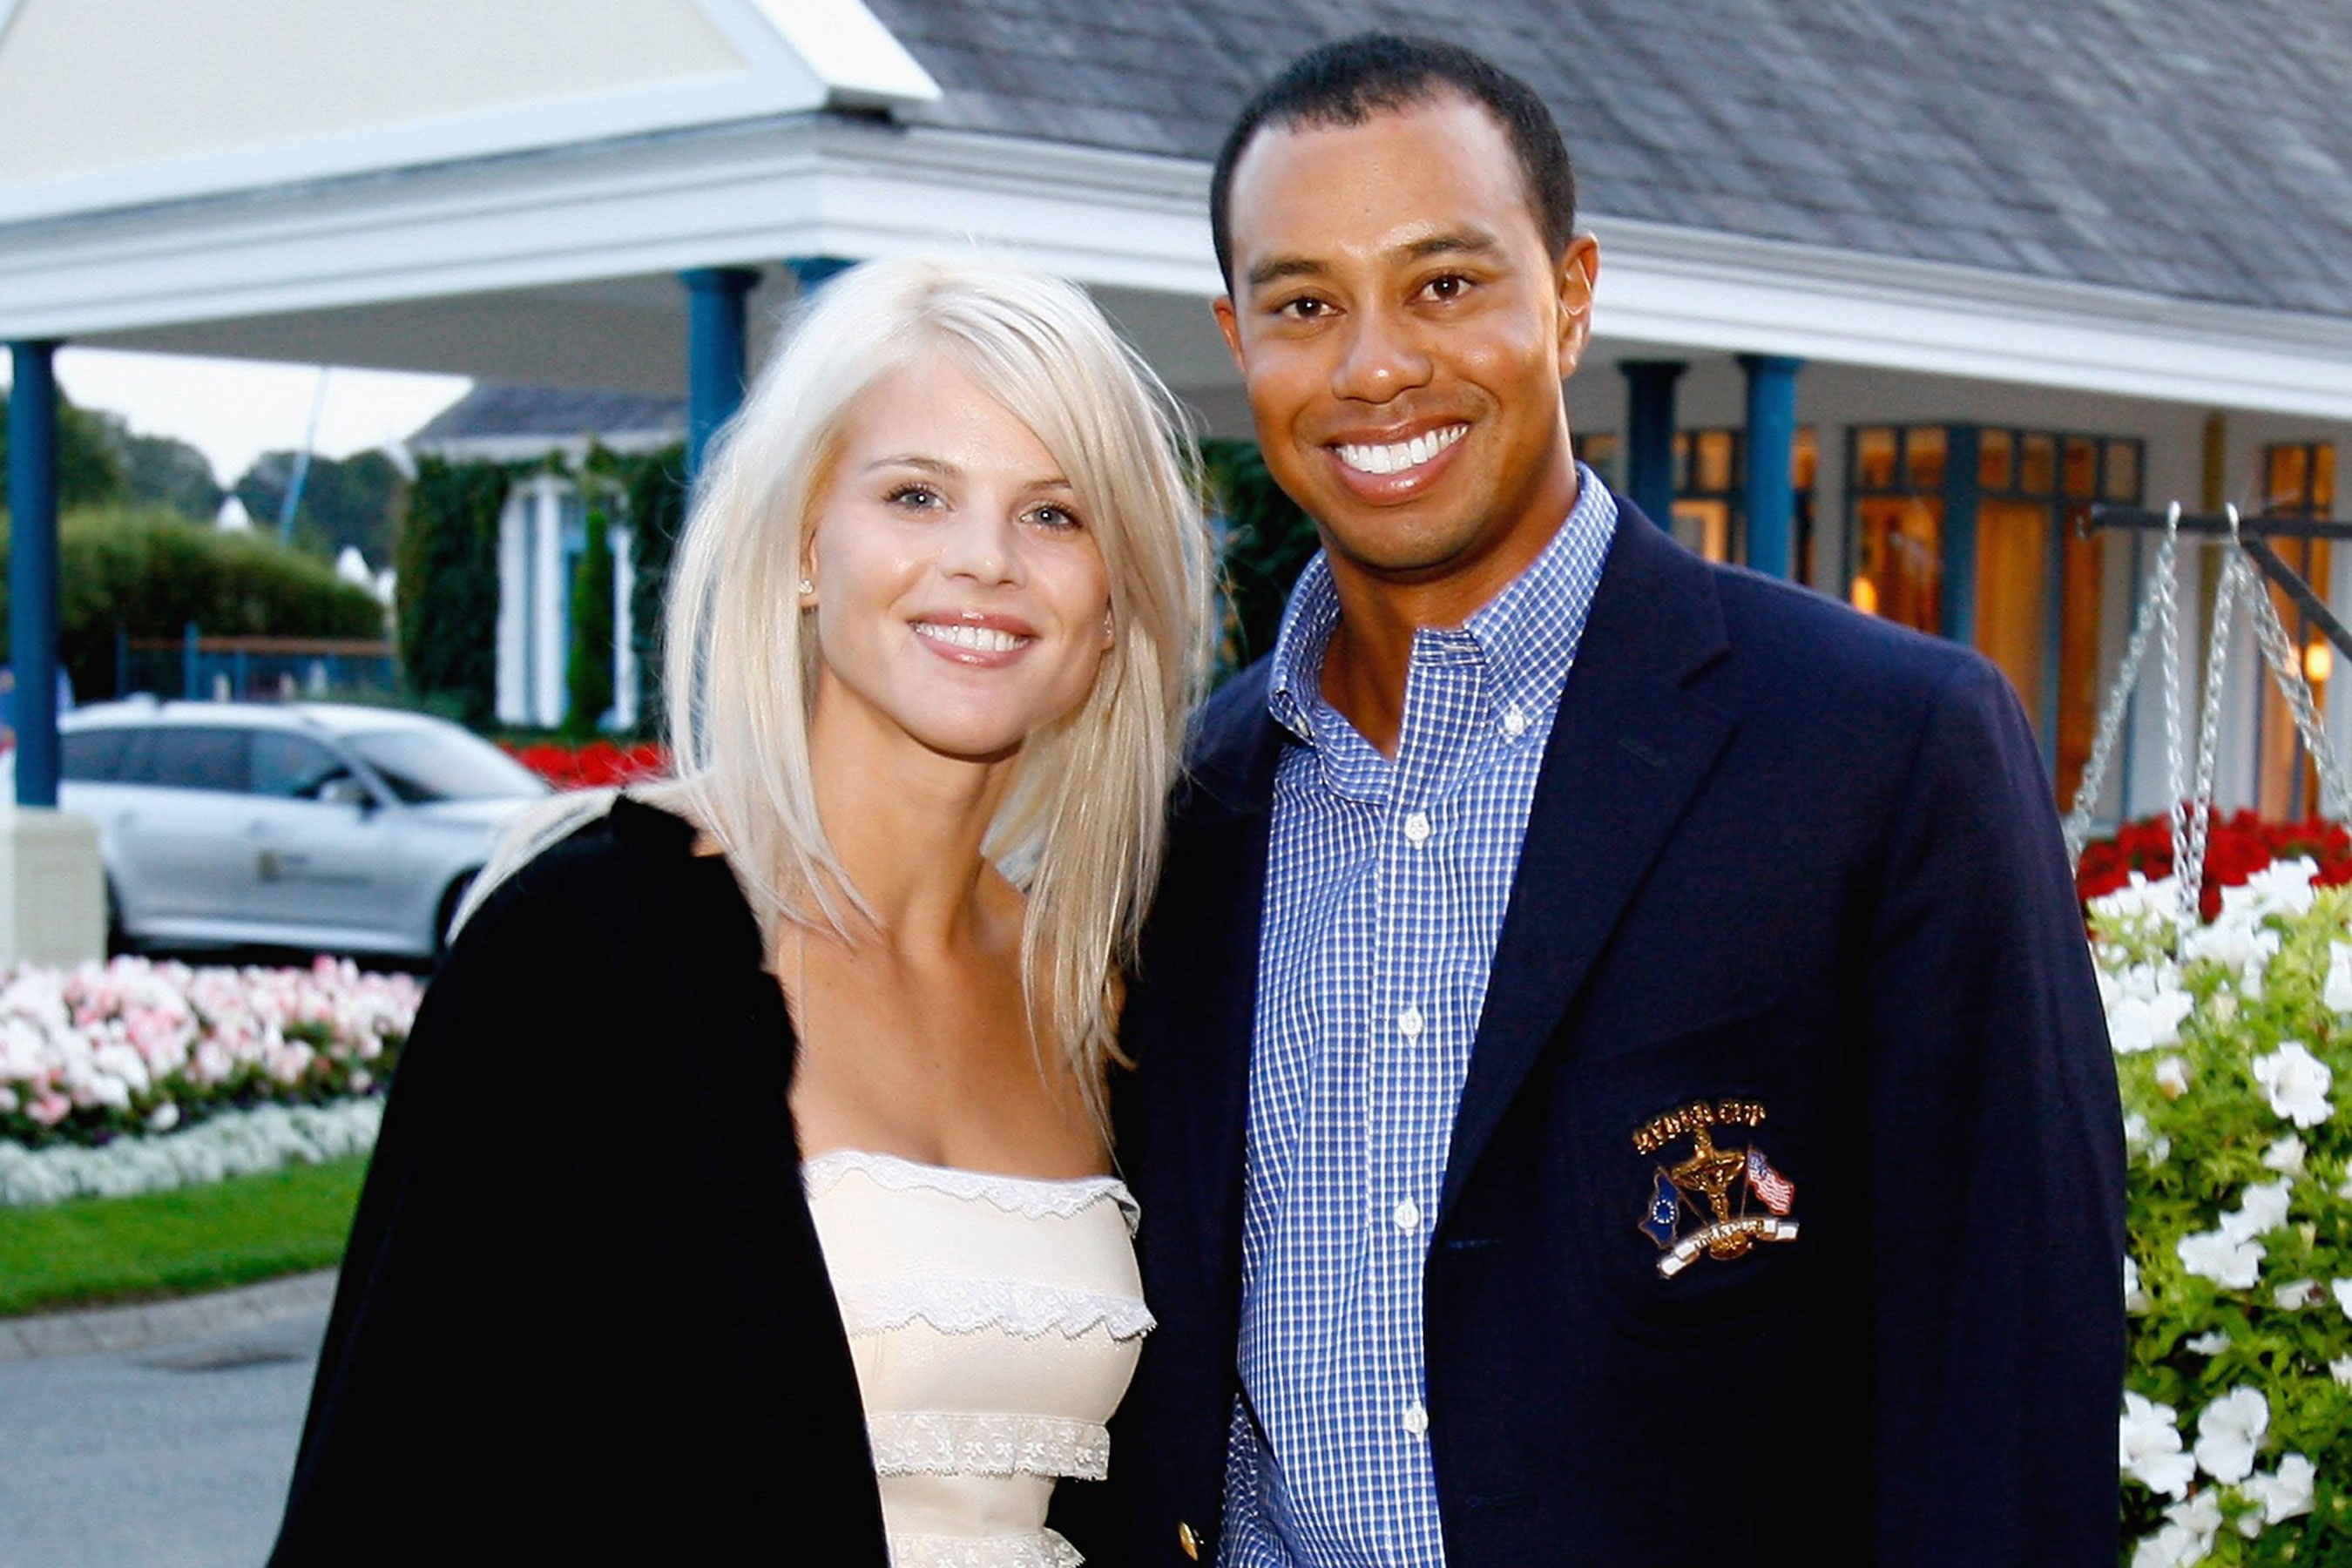 Tiger woods had one of the most expensive and messy divorces in Hollywood